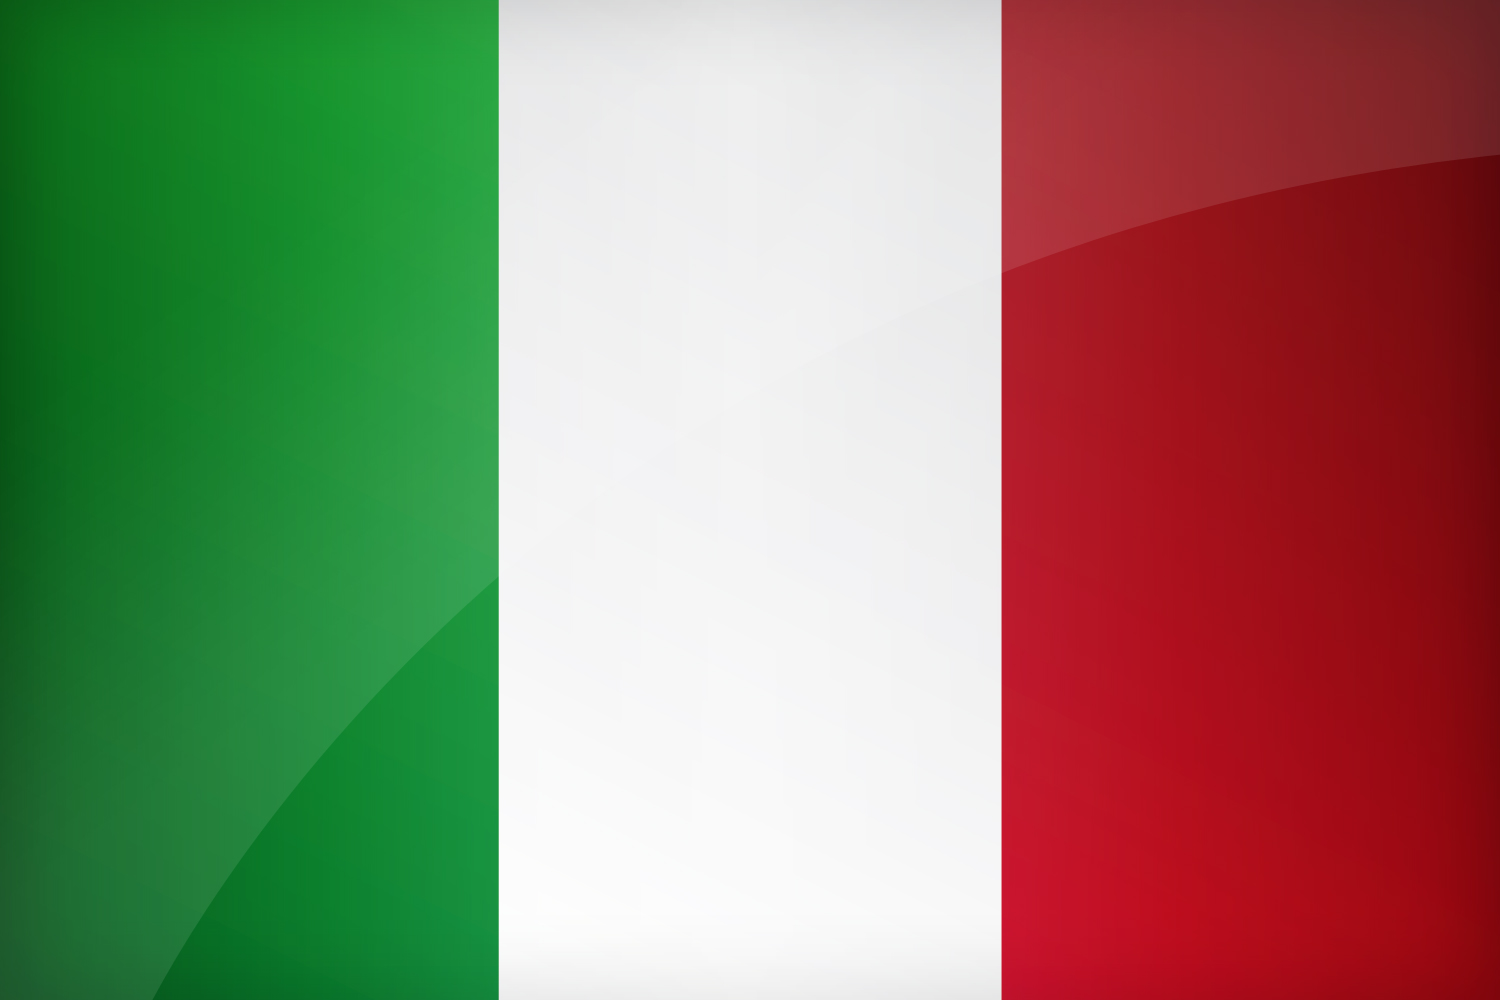 Download Flag Italy Download the National Italian flag [1500x1000 1500x1000